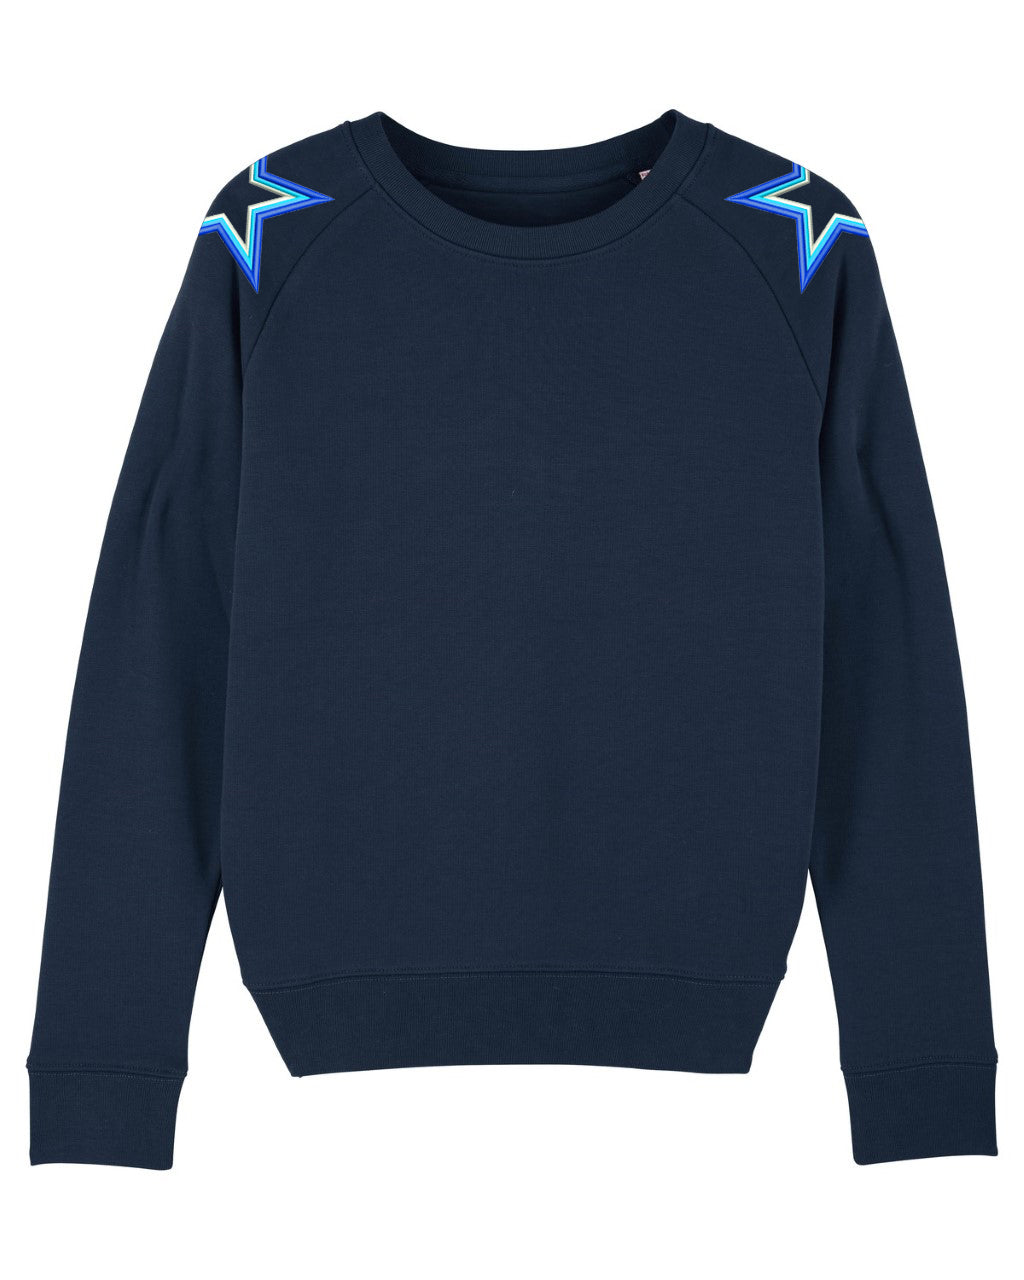 Navy Shoulder Star Sweatshirt